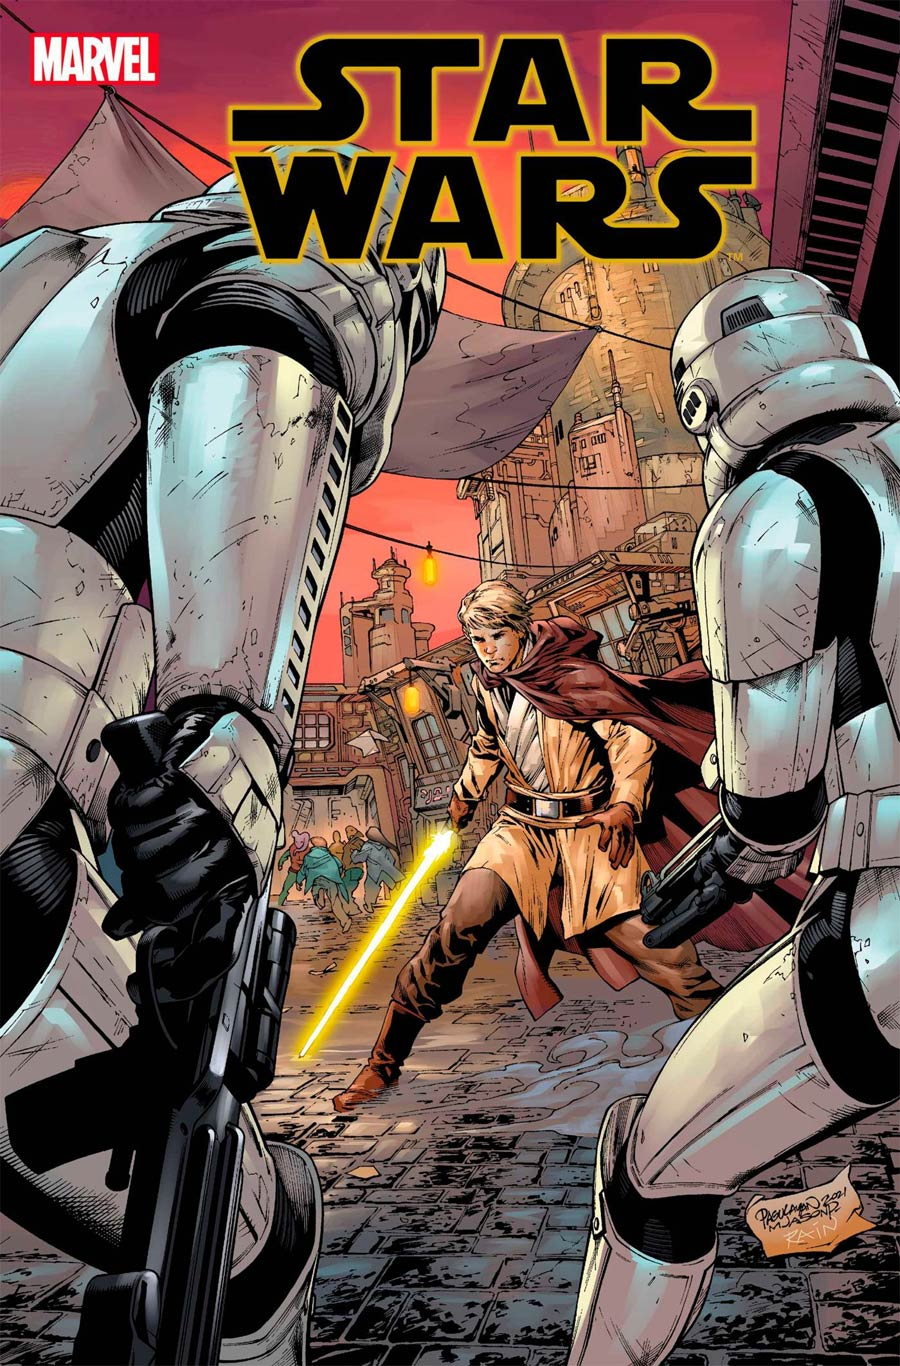 Star Wars Vol 5 #19 Cover A Regular Carlo Pagulayan Cover